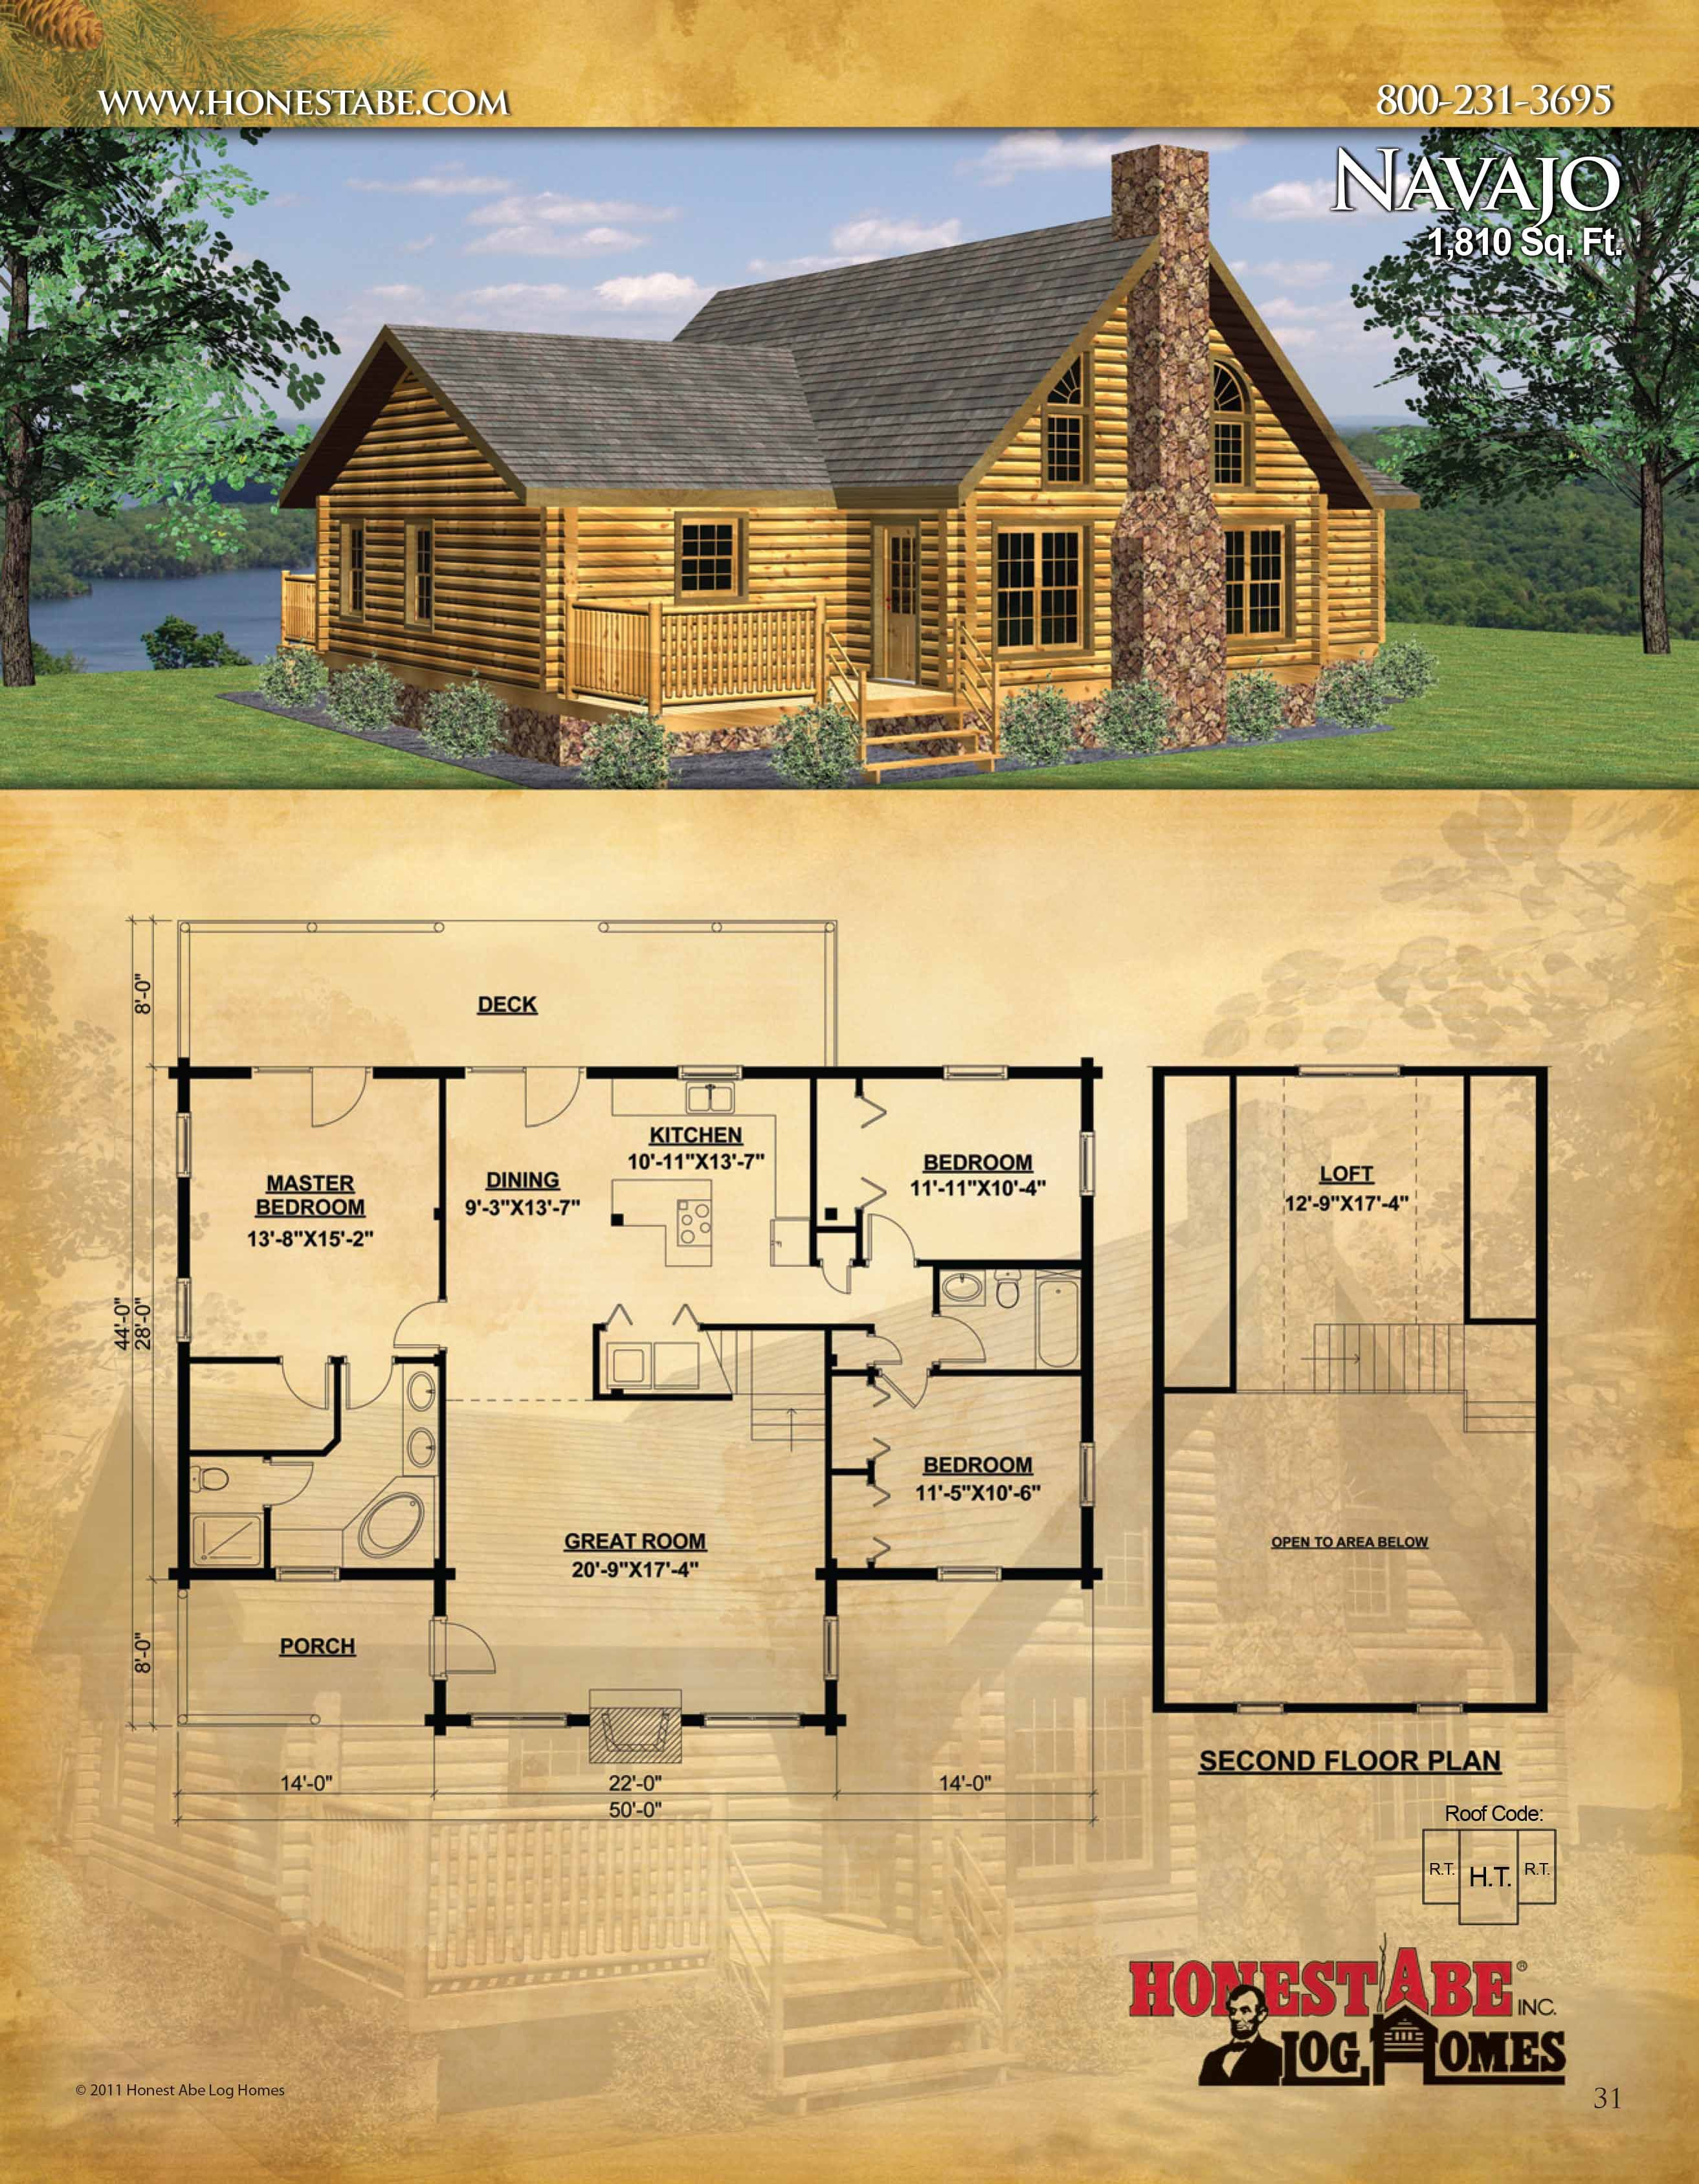 Browse Floor Plans For Our Custom Log Cabin Homes Cabin House Plans House Blueprints Log Cabin Floor Plans